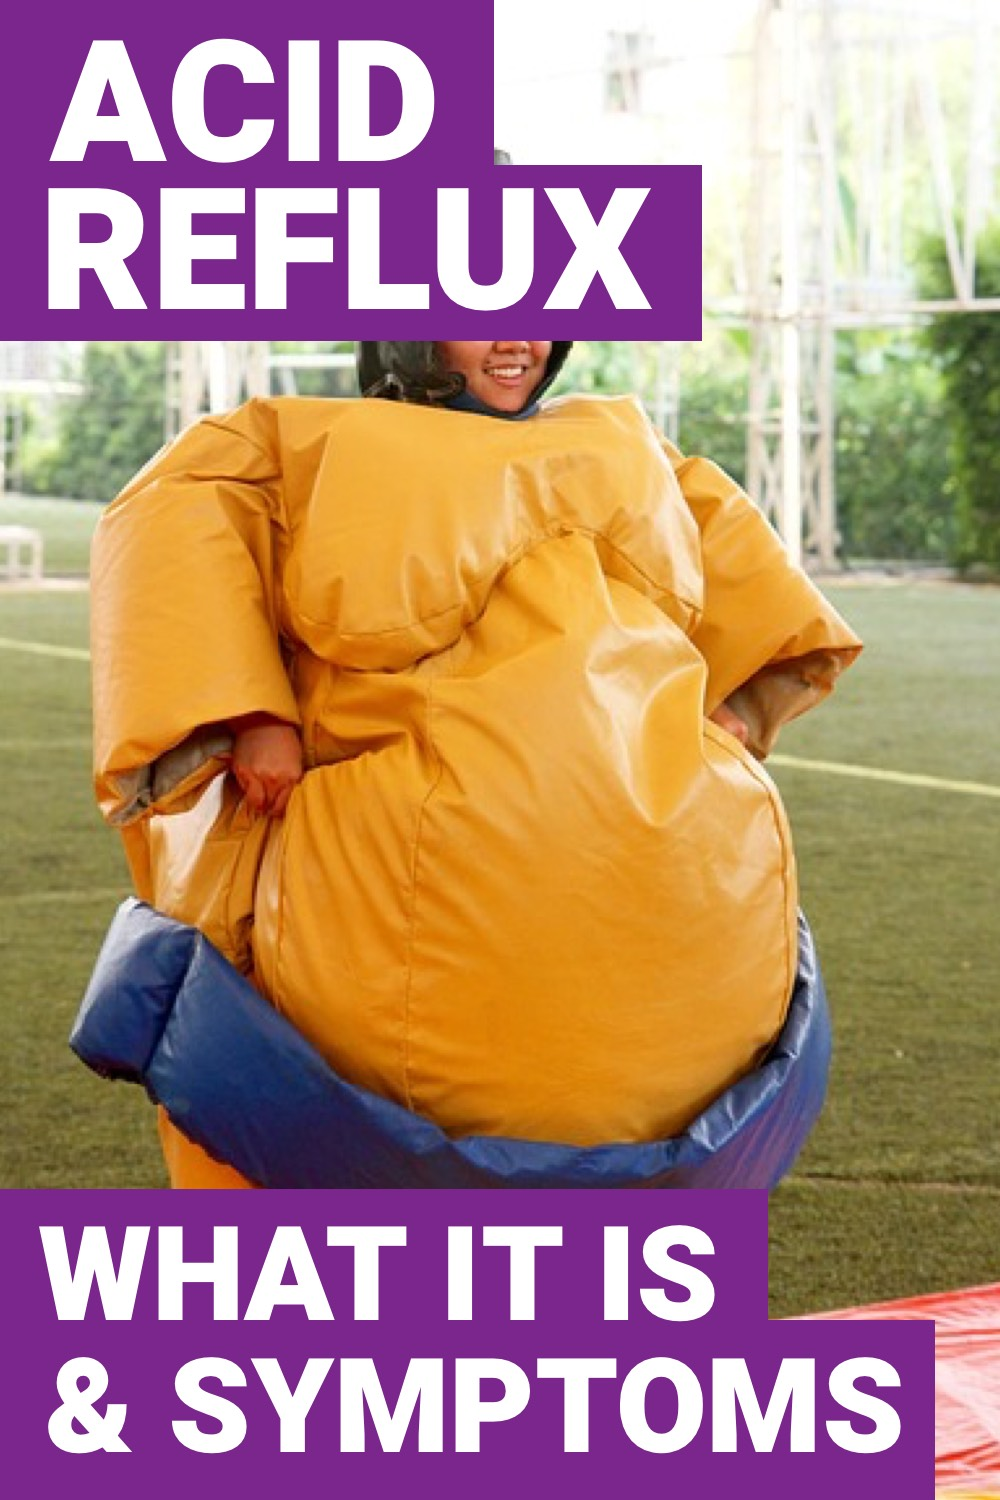 If you have acid reflux, you know the pain it can cause. But what causes acid reflux? You can find out here.